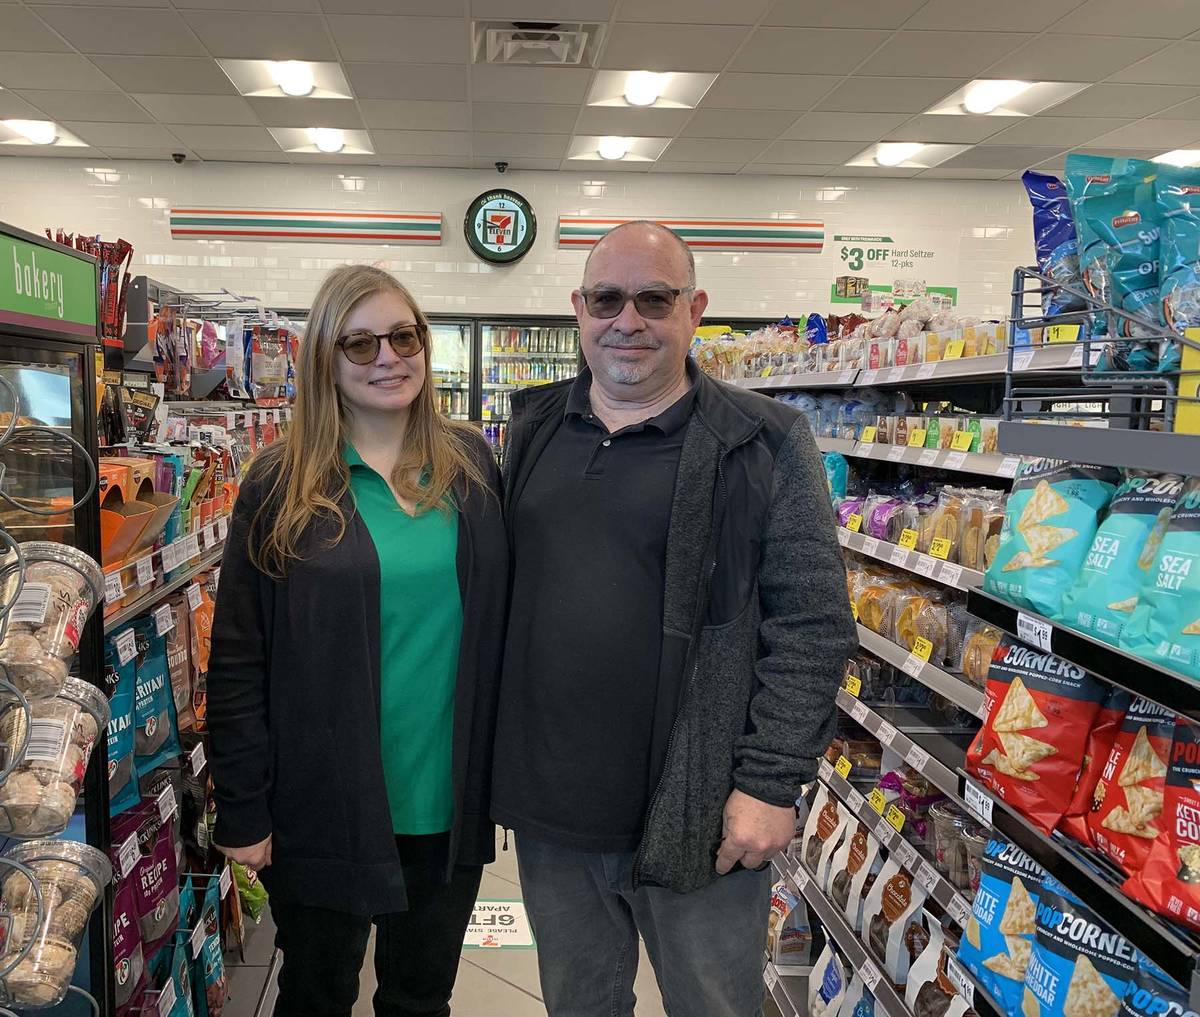 (Hali Bernstein Saylor/Boulder City Review) Amy and Tom Carvalho opened their new 7-Eleven at 1 ...